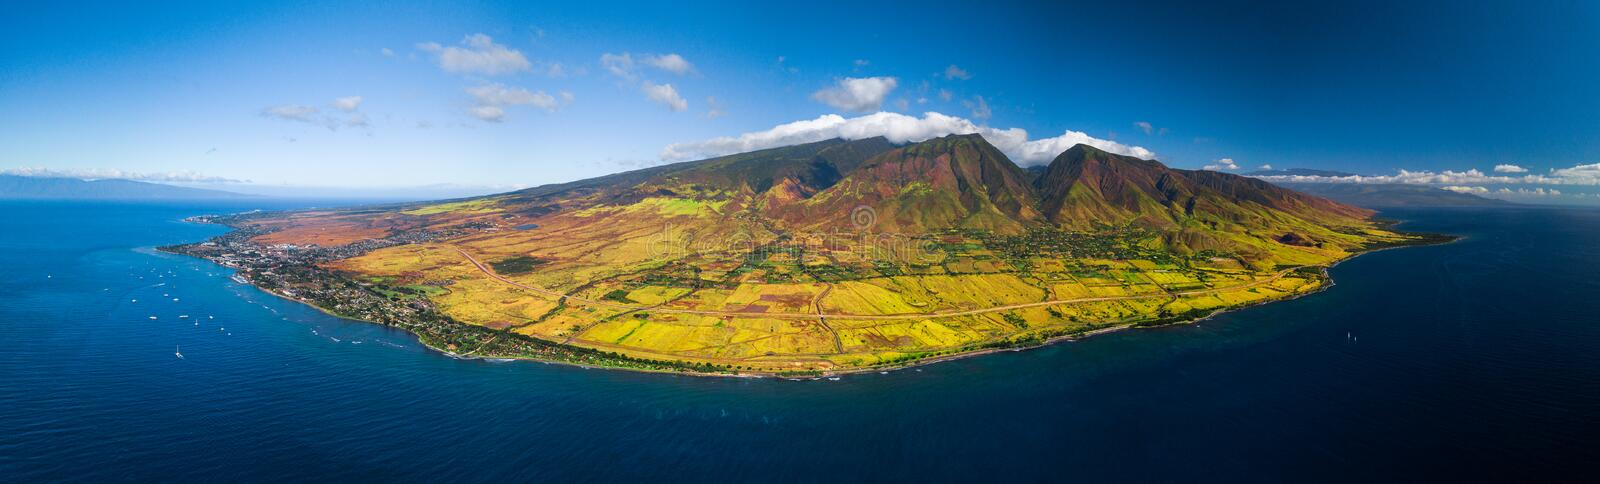 Aerial panorama of the west coast of Maui stock image